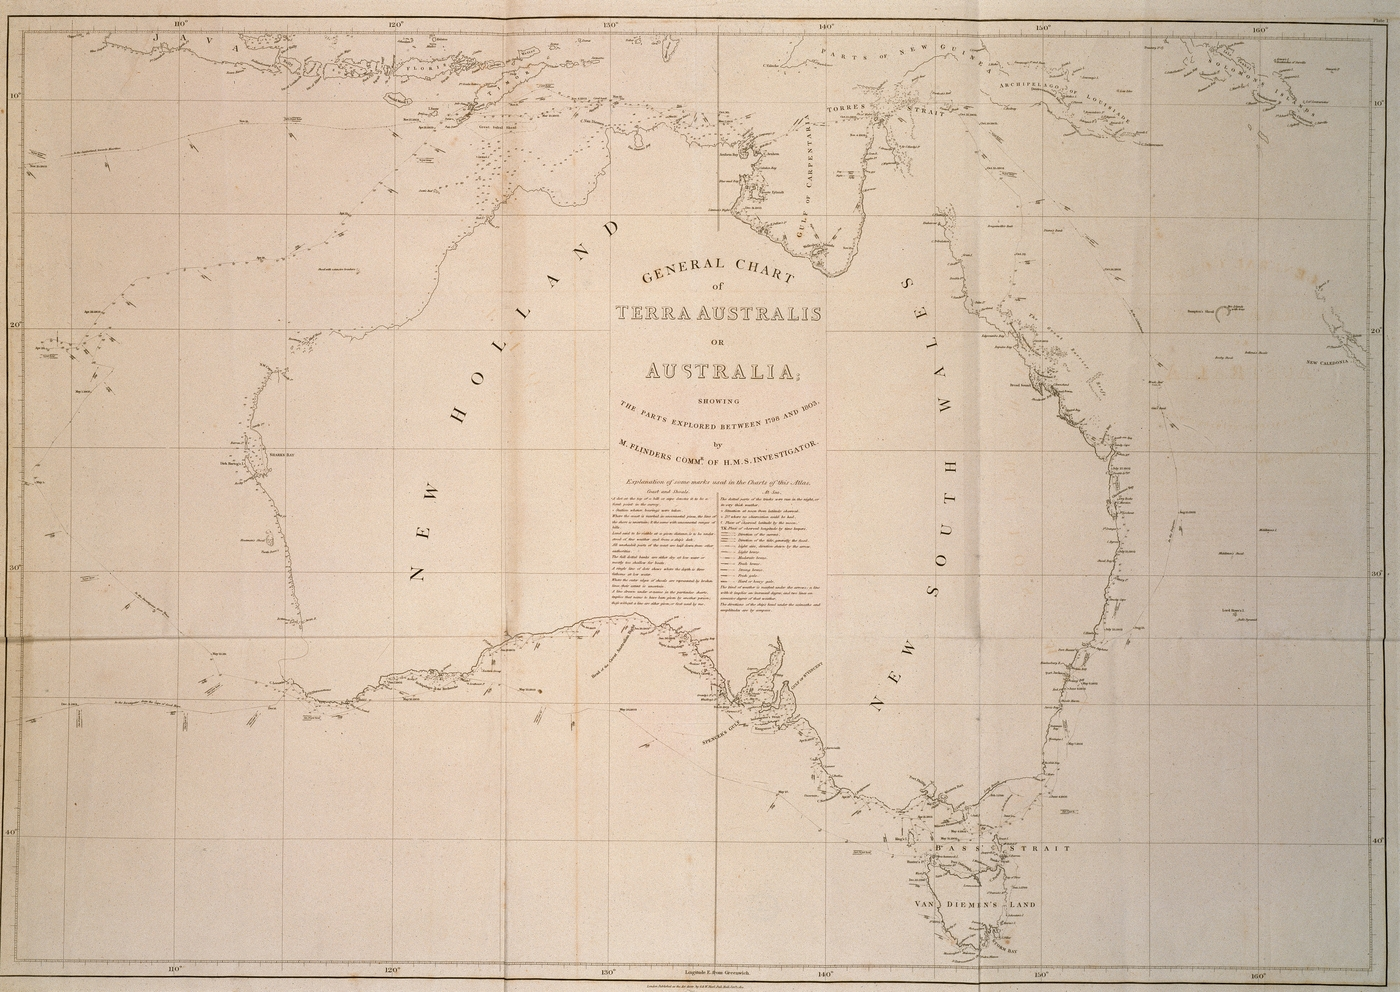 'General Chart of Terra Australis or Australia: showing the parts explored between 1798 and 1803 by Matthew Flinders Commr. of H.M.S. Investigator'